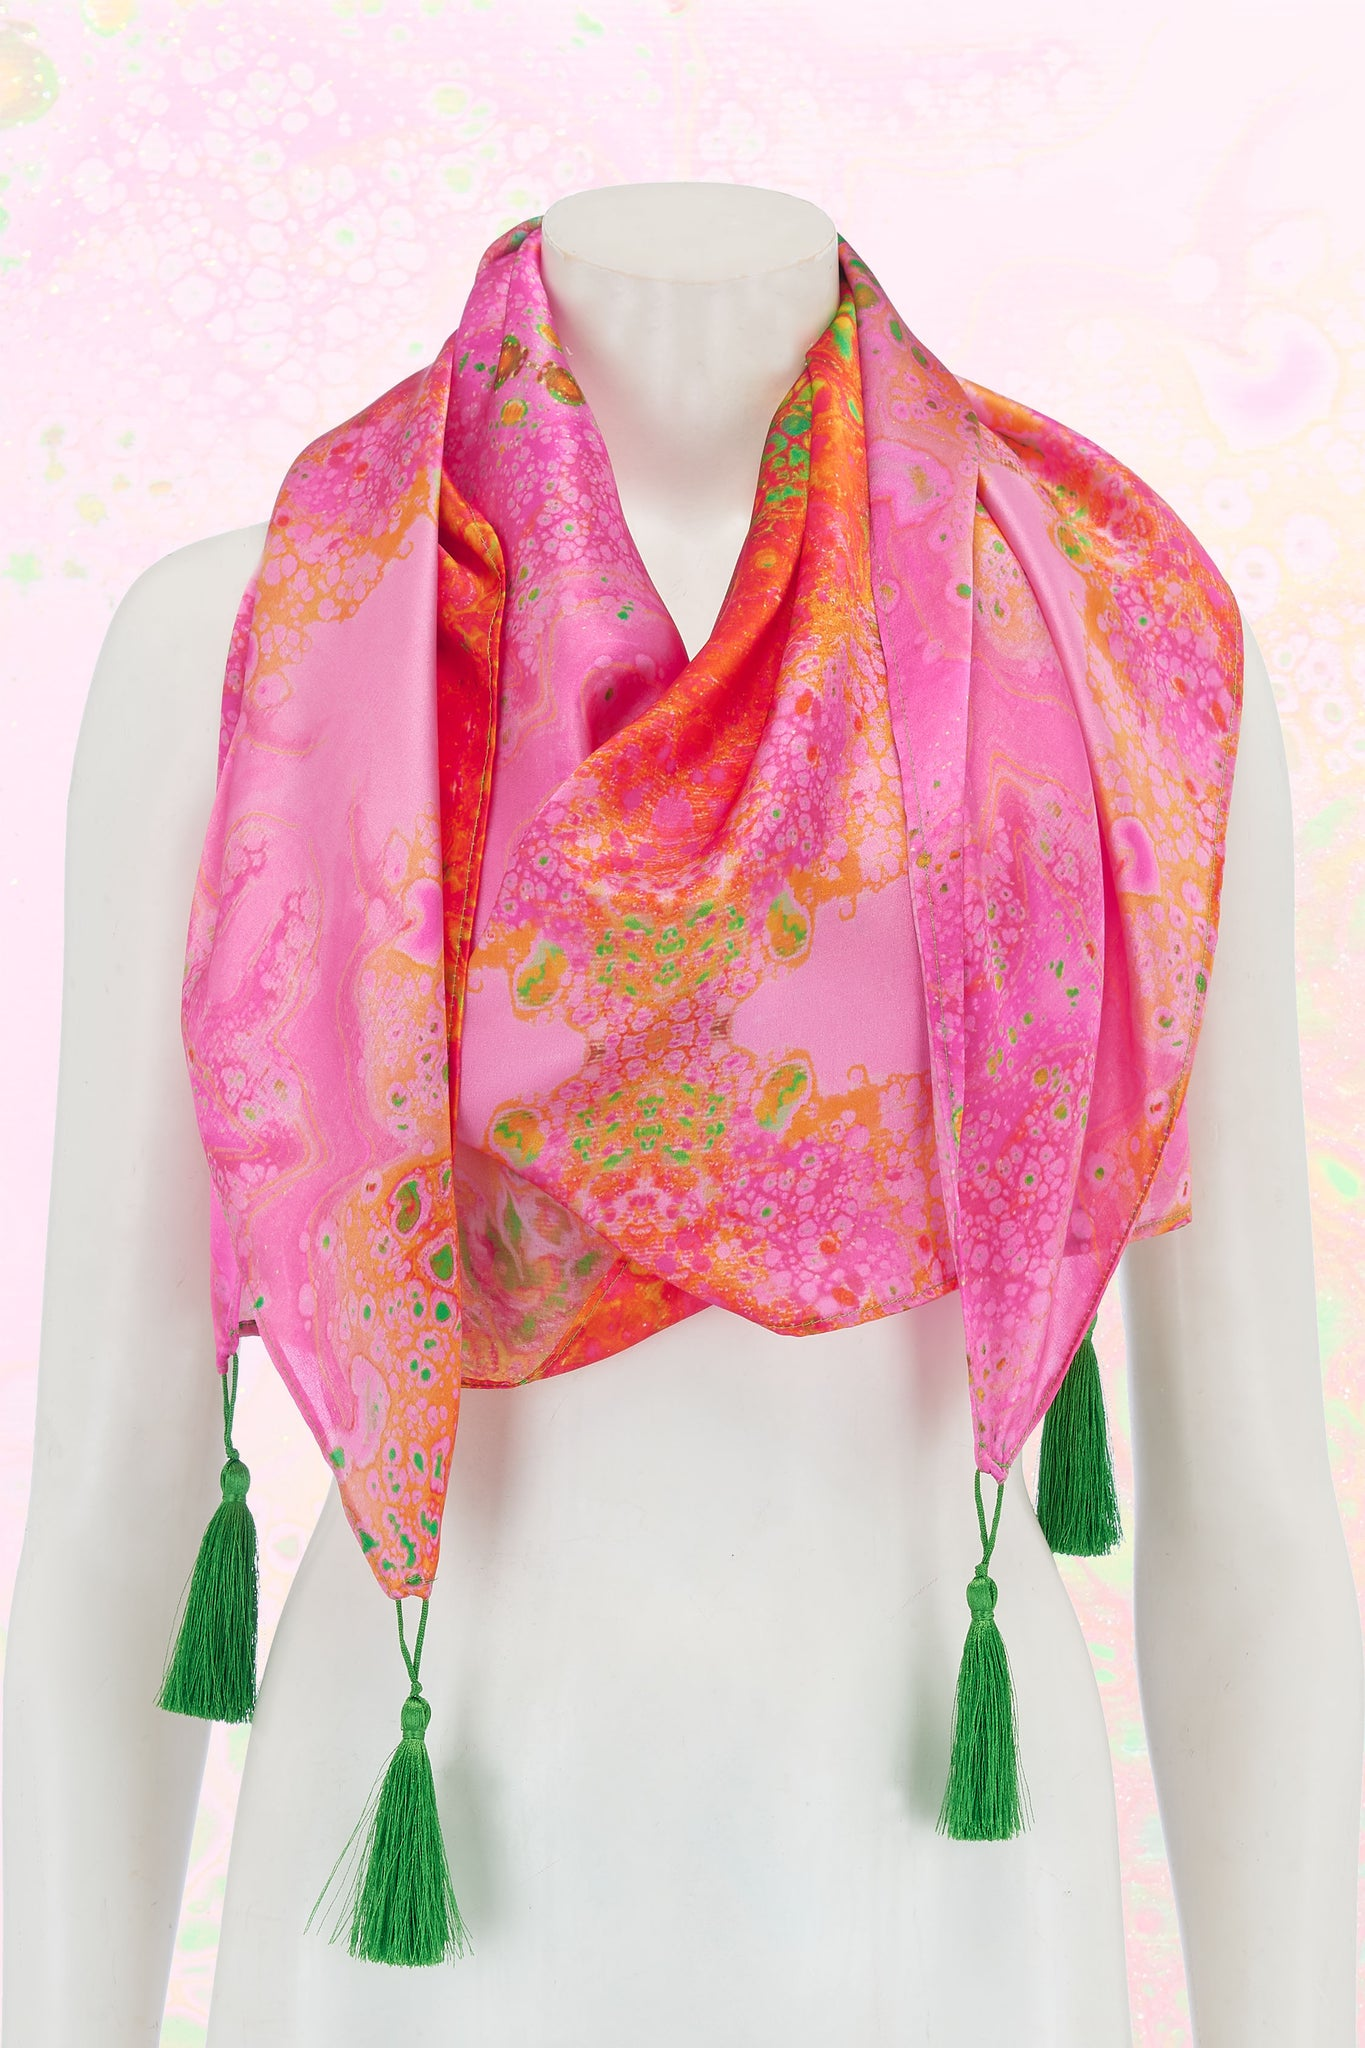 Körpermitose Large Pink and Orange Printed Scarf